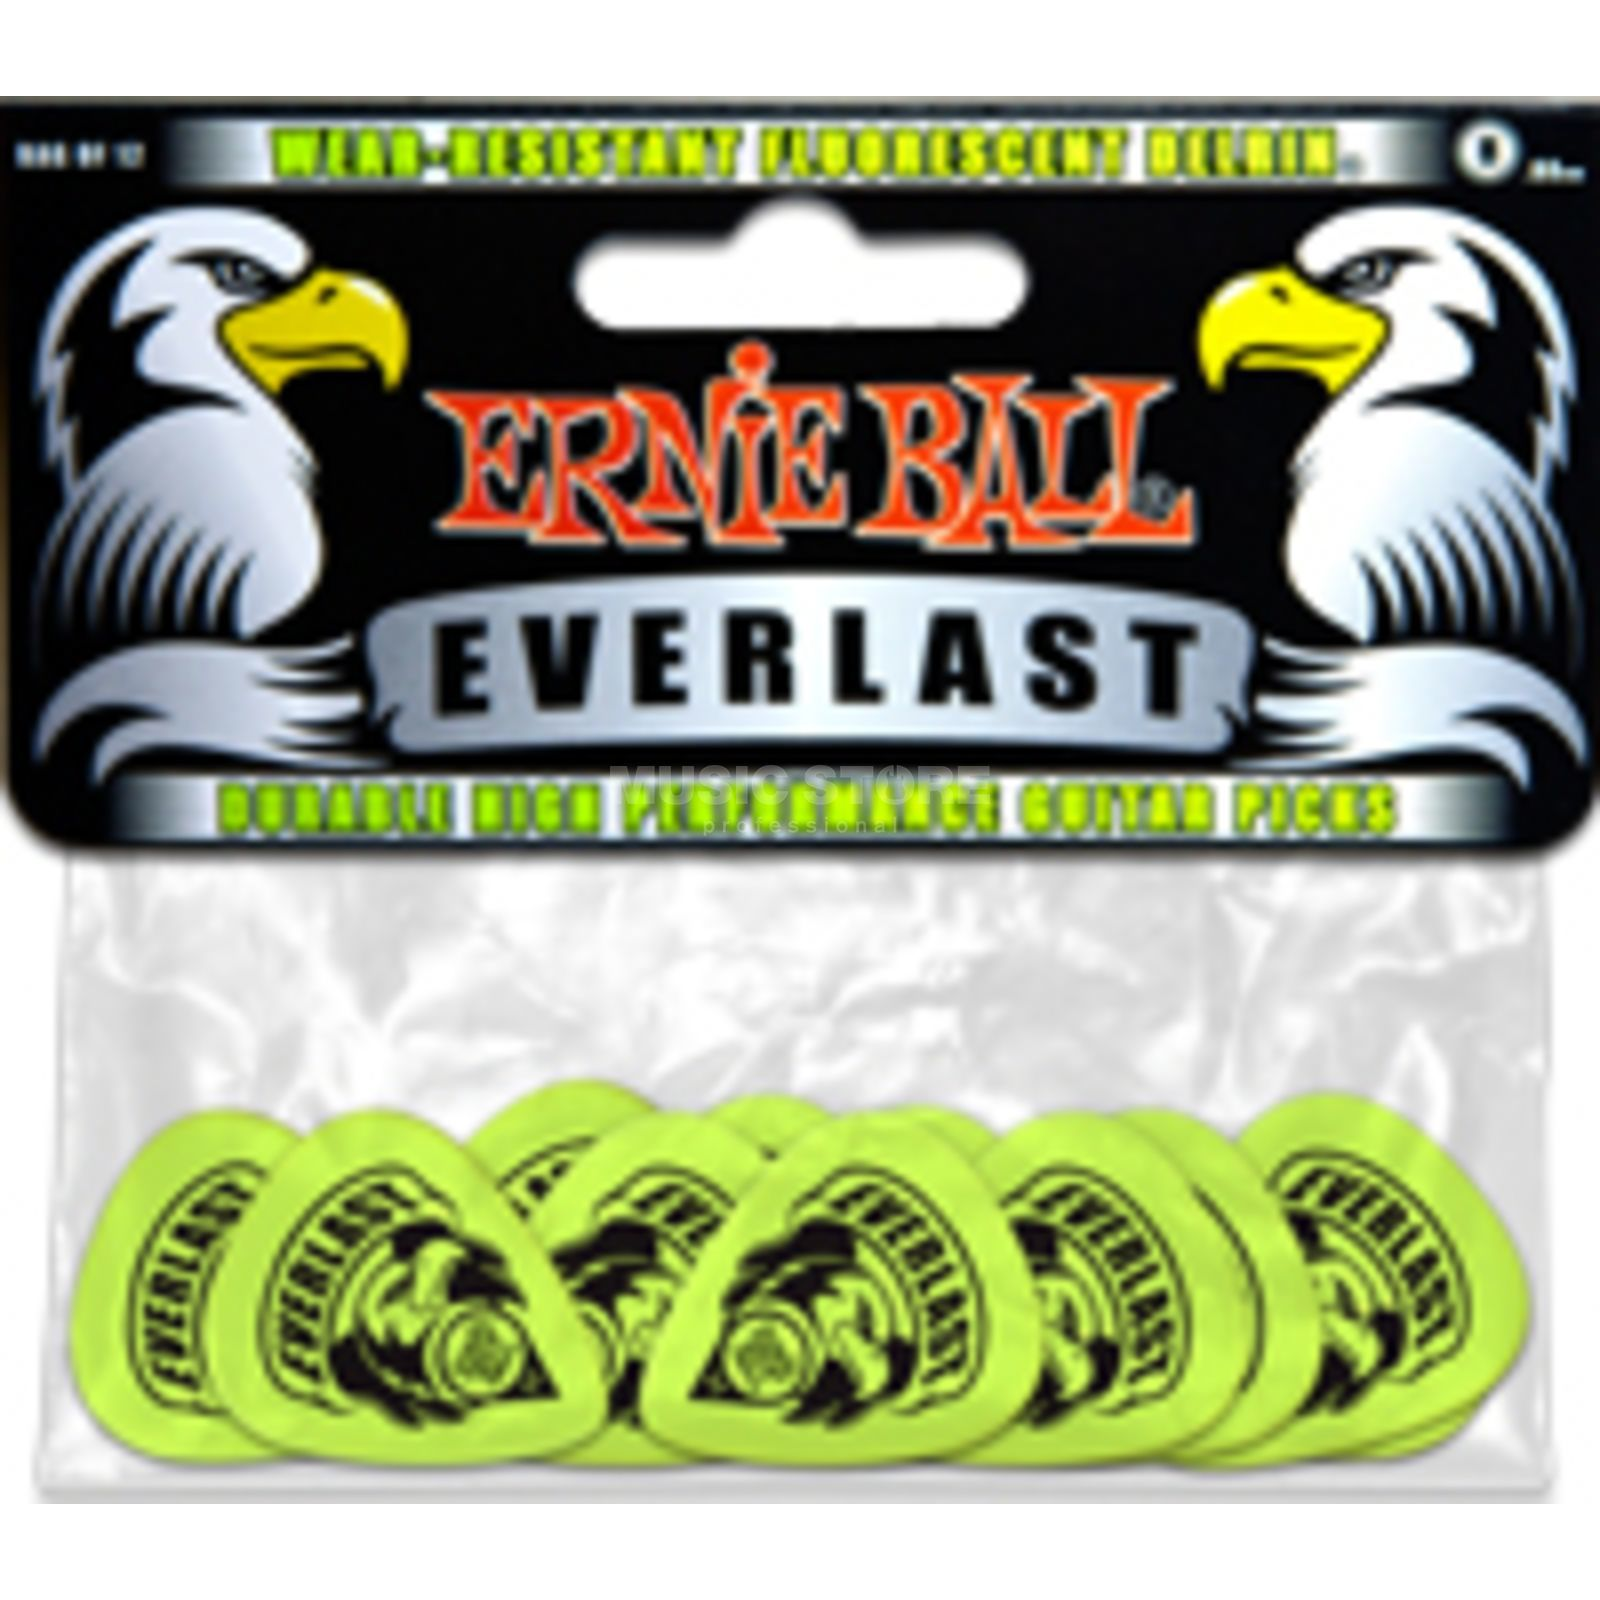 Ernie Ball EB9191 Everlast Picks Heavy Green 12er Set Produktbild